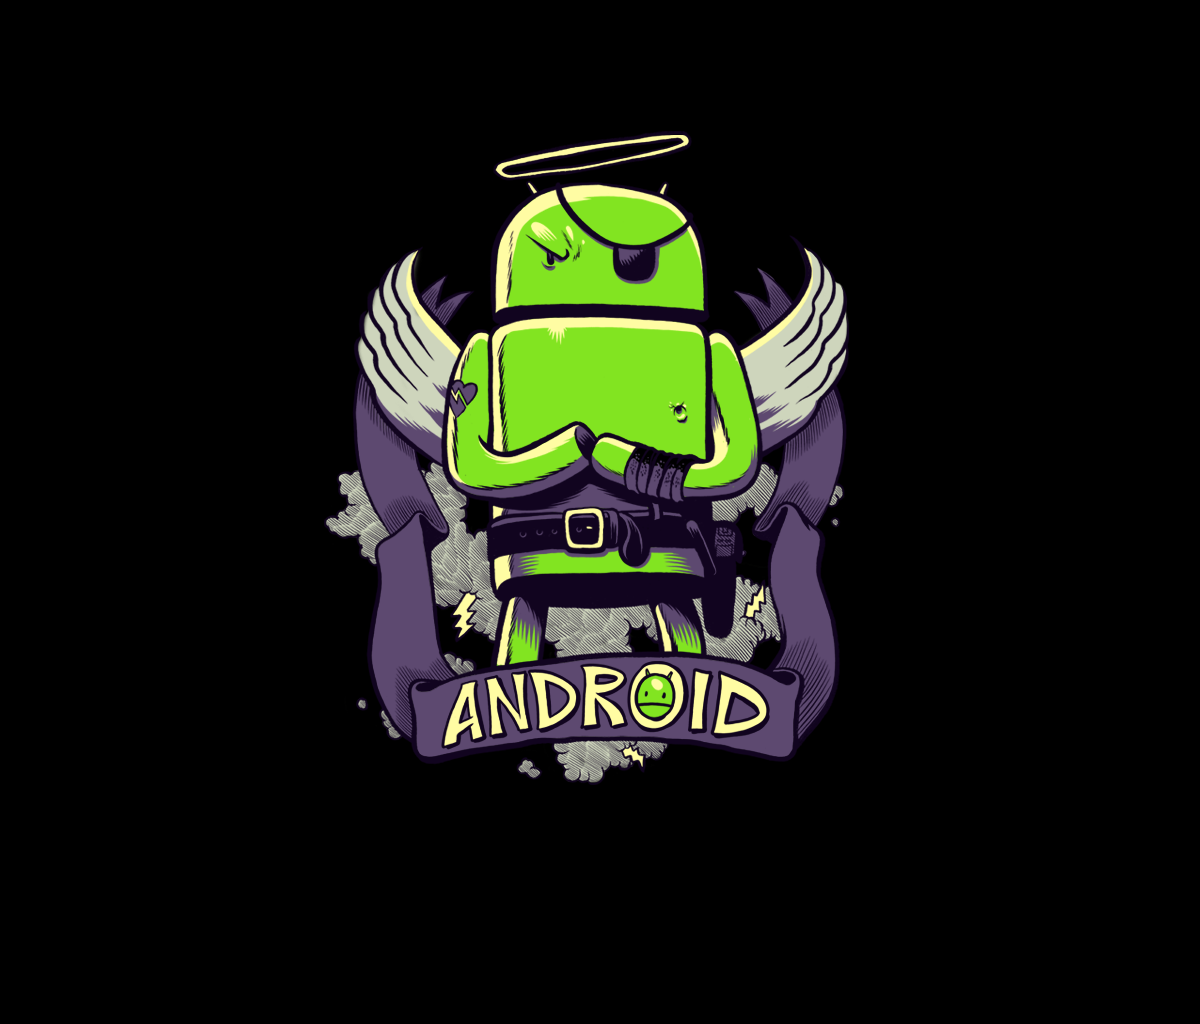 New Android wallpaper The Underdog available in 3 colors Android 1200x1024